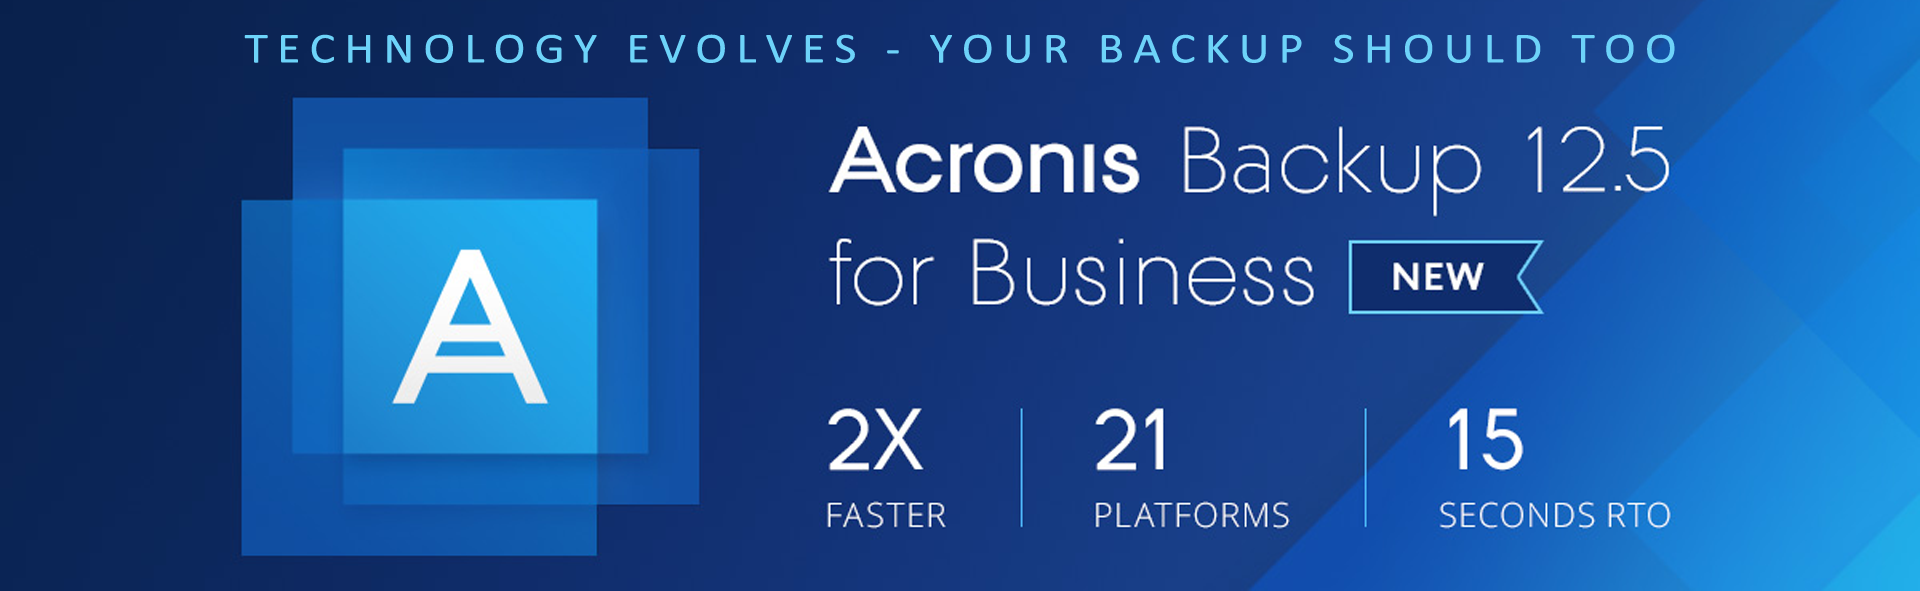 AcronisBanner